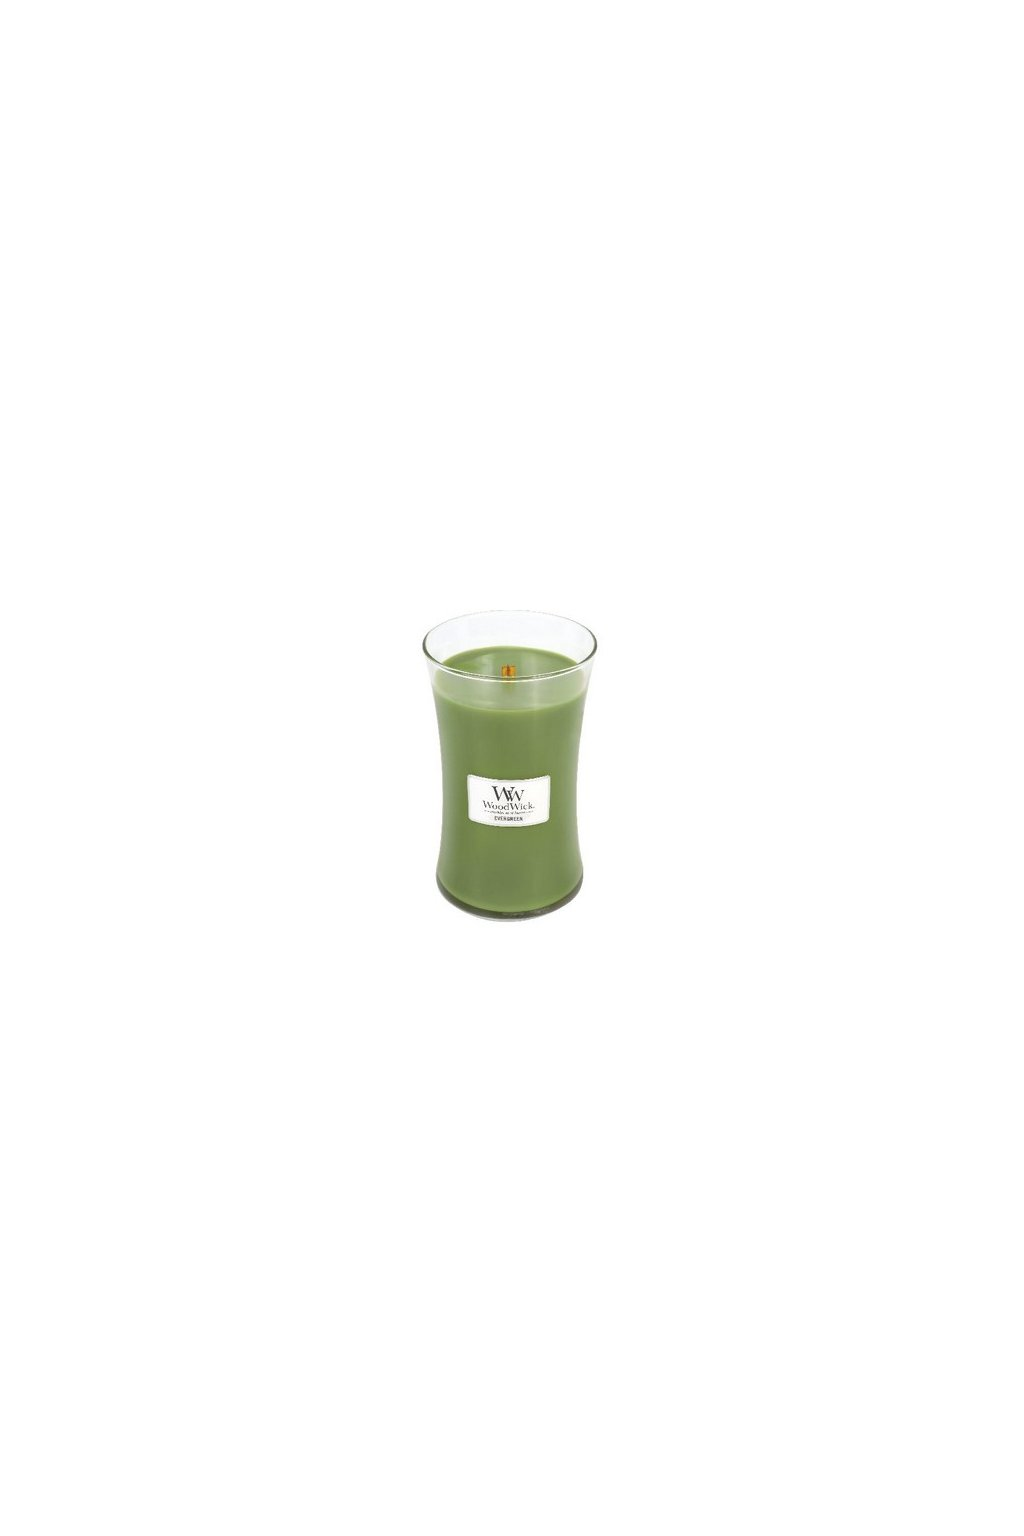 Woodwick Evergreen 609g